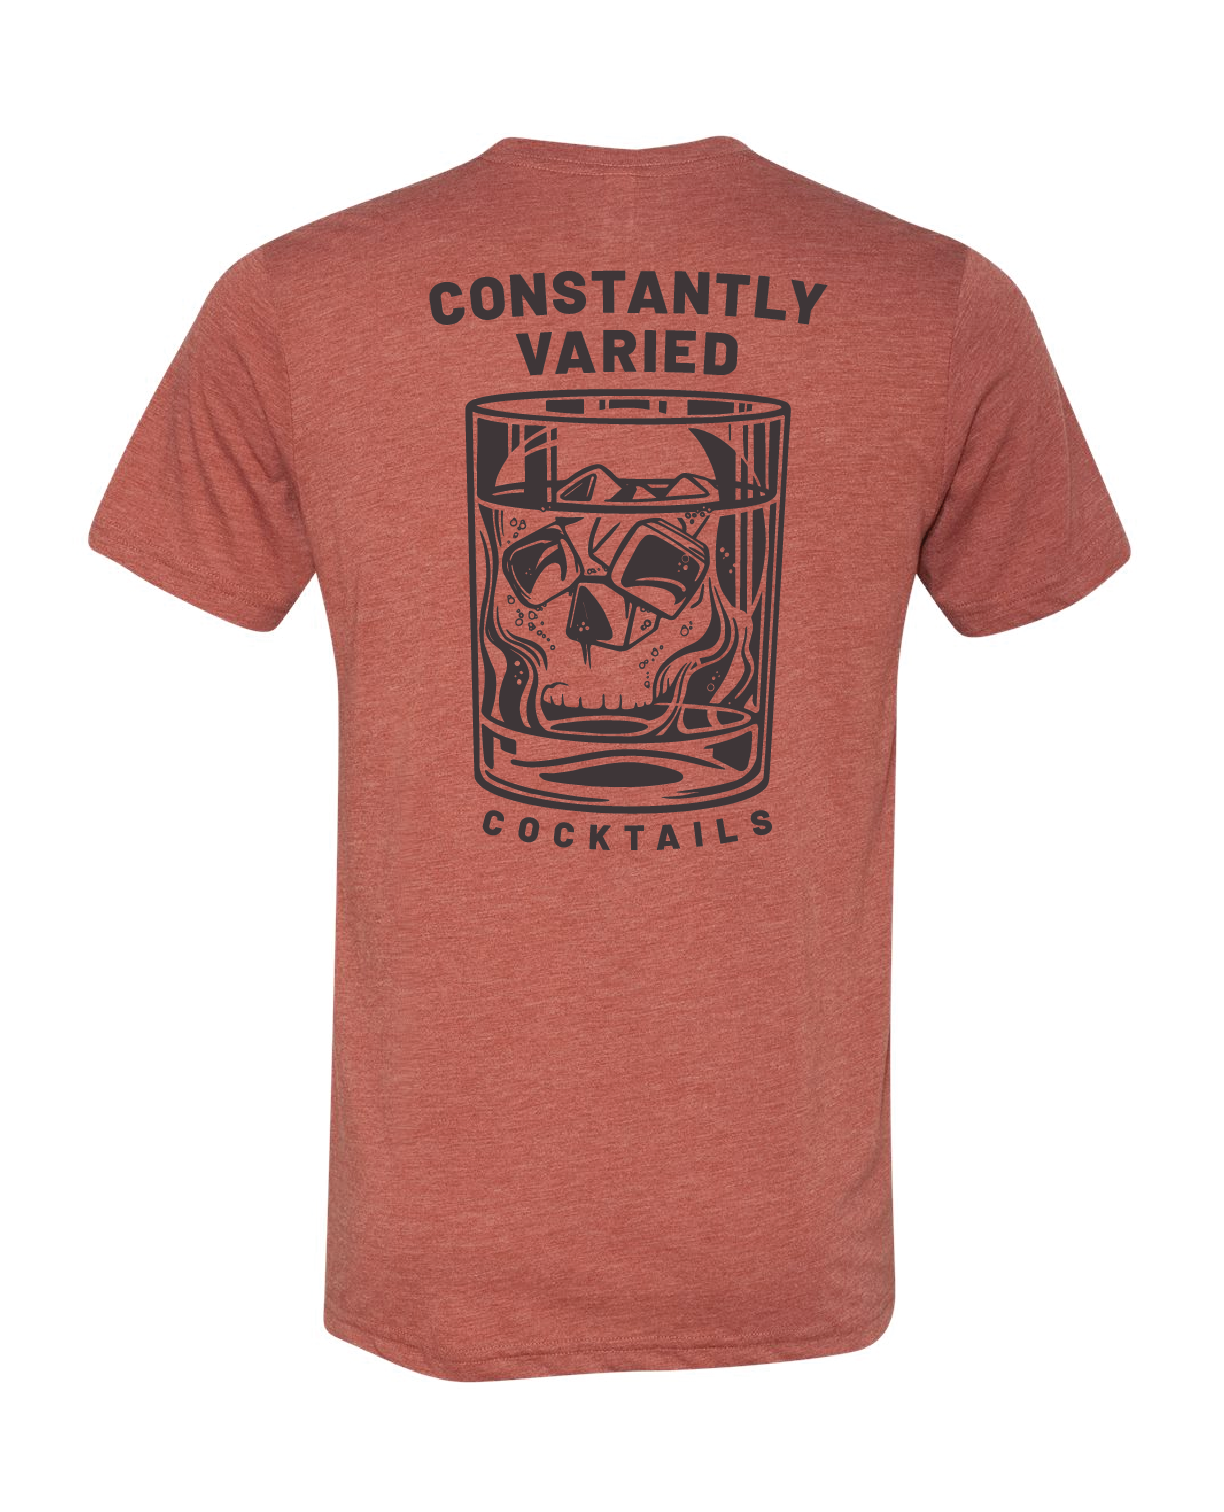 Constantly Varied Cocktails Tee